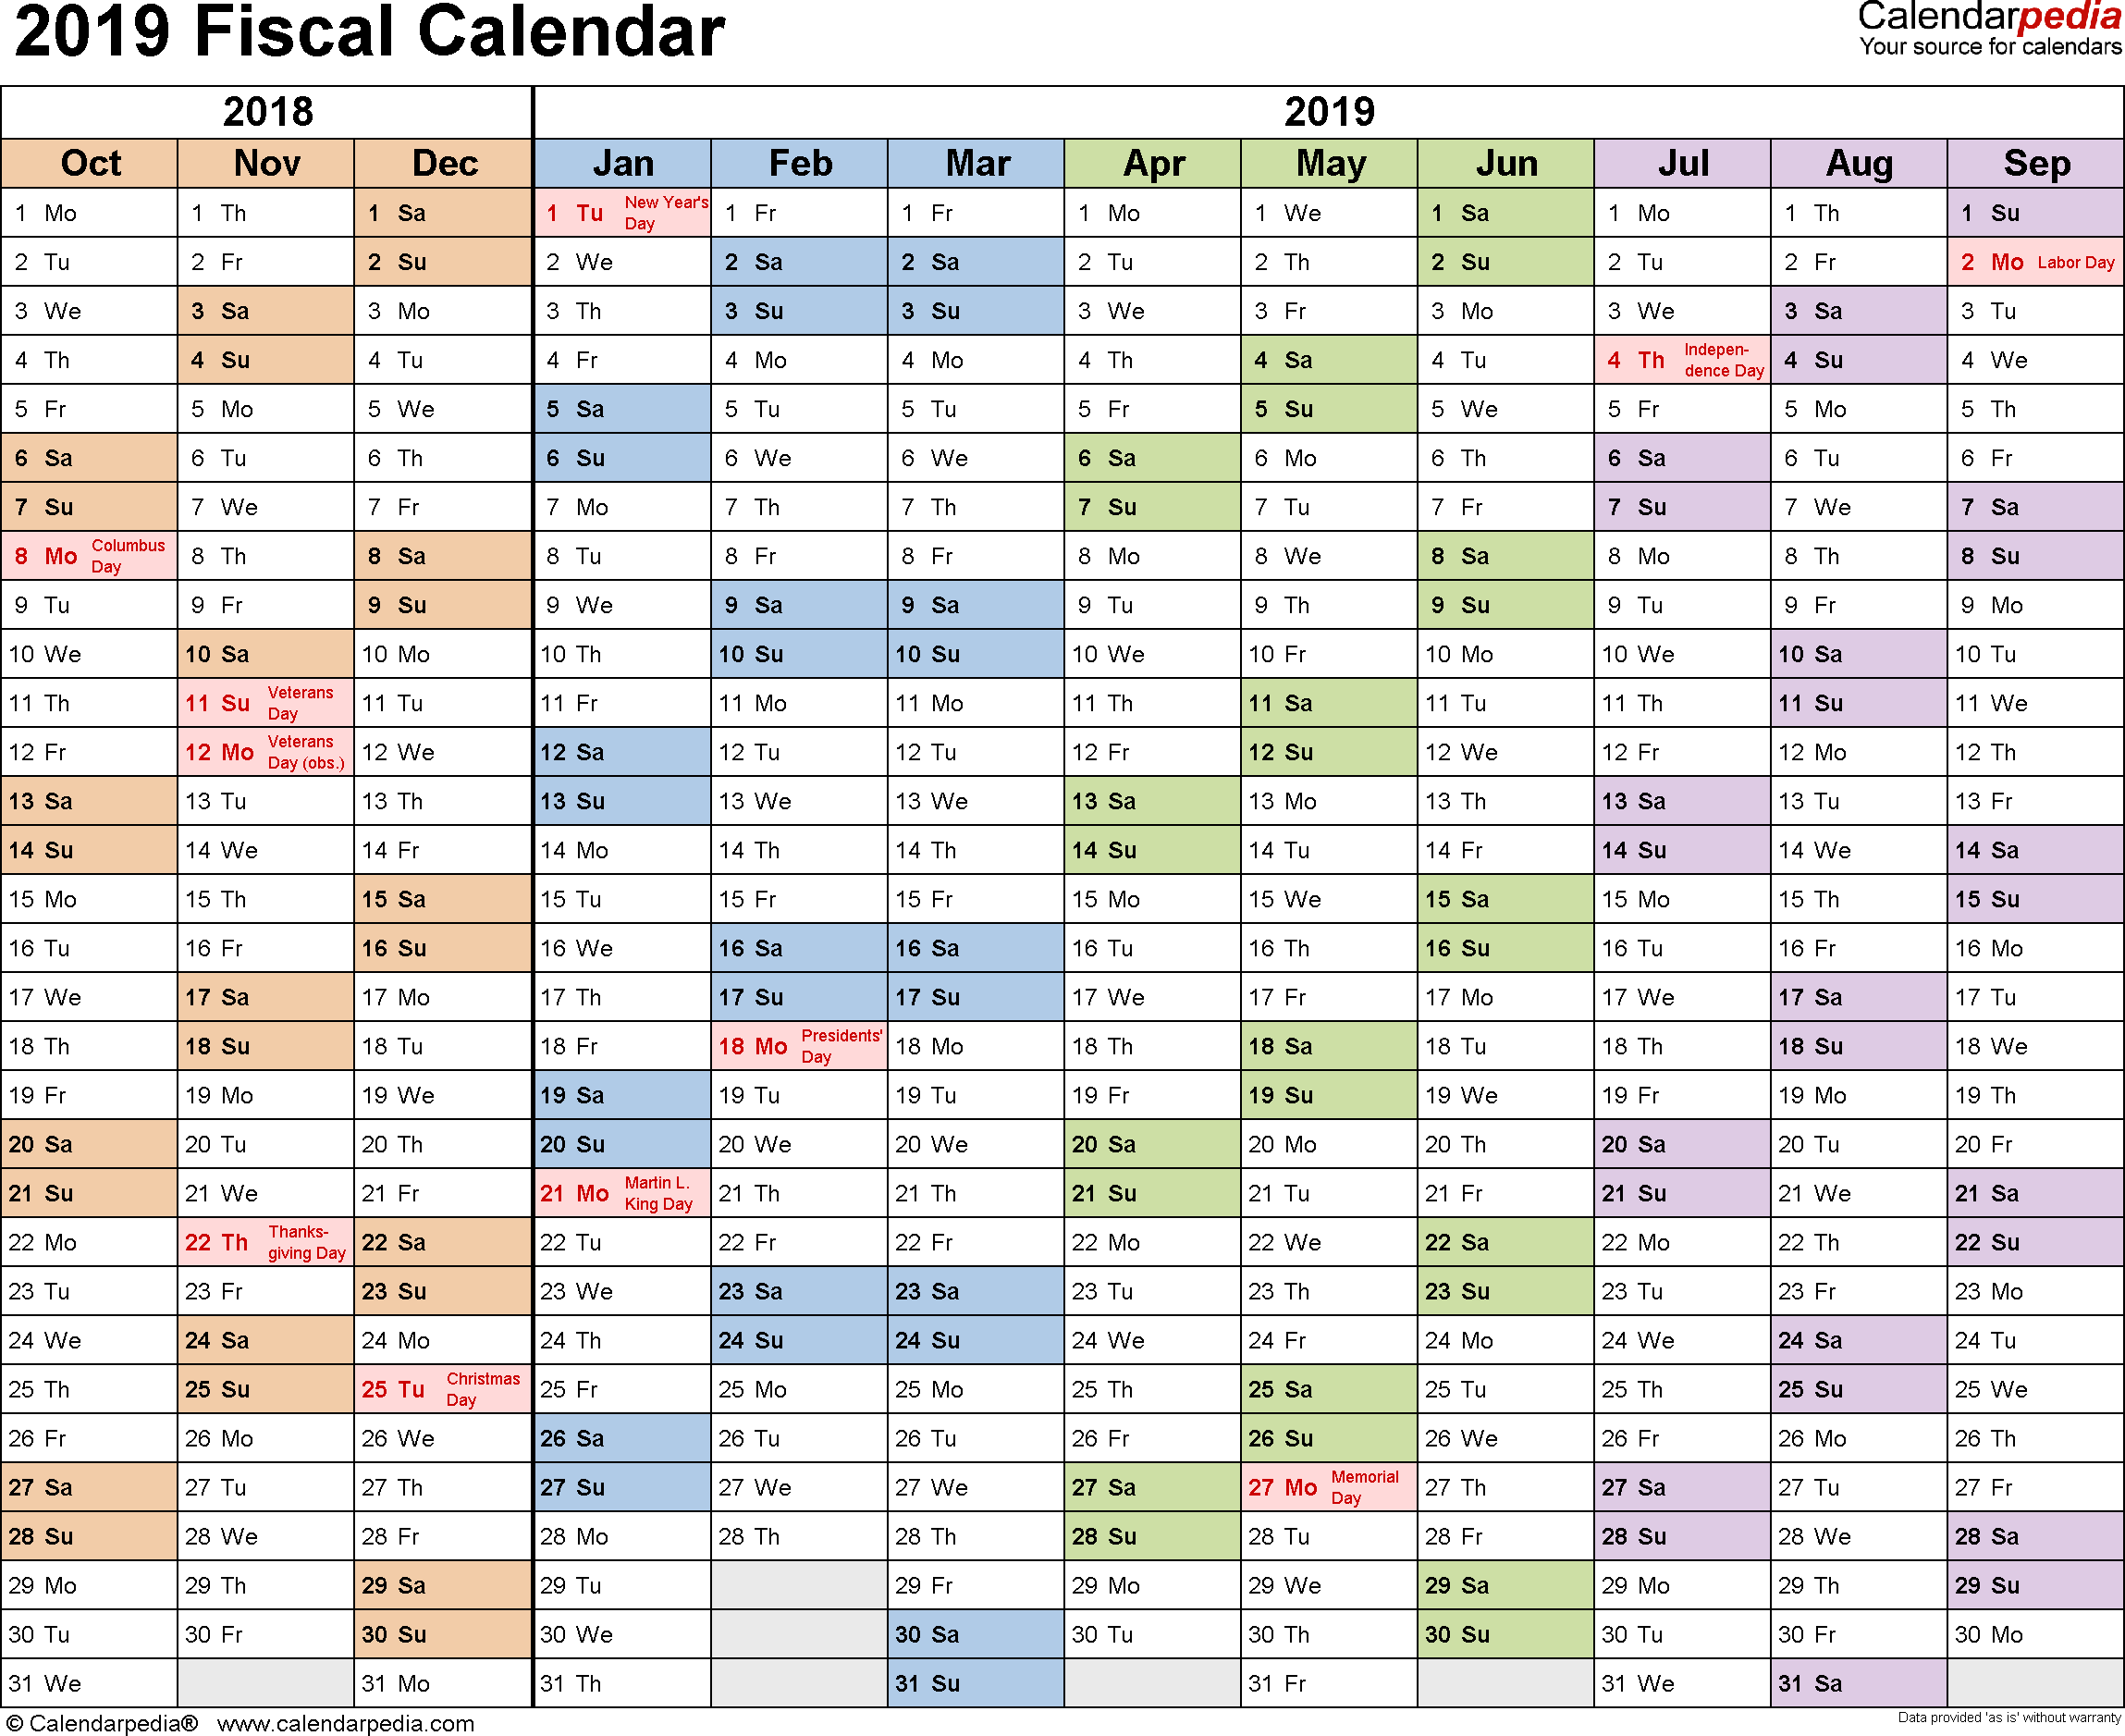 Calendar For Year 2019 Australia With Fiscal Calendars As Free Printable Word Templates